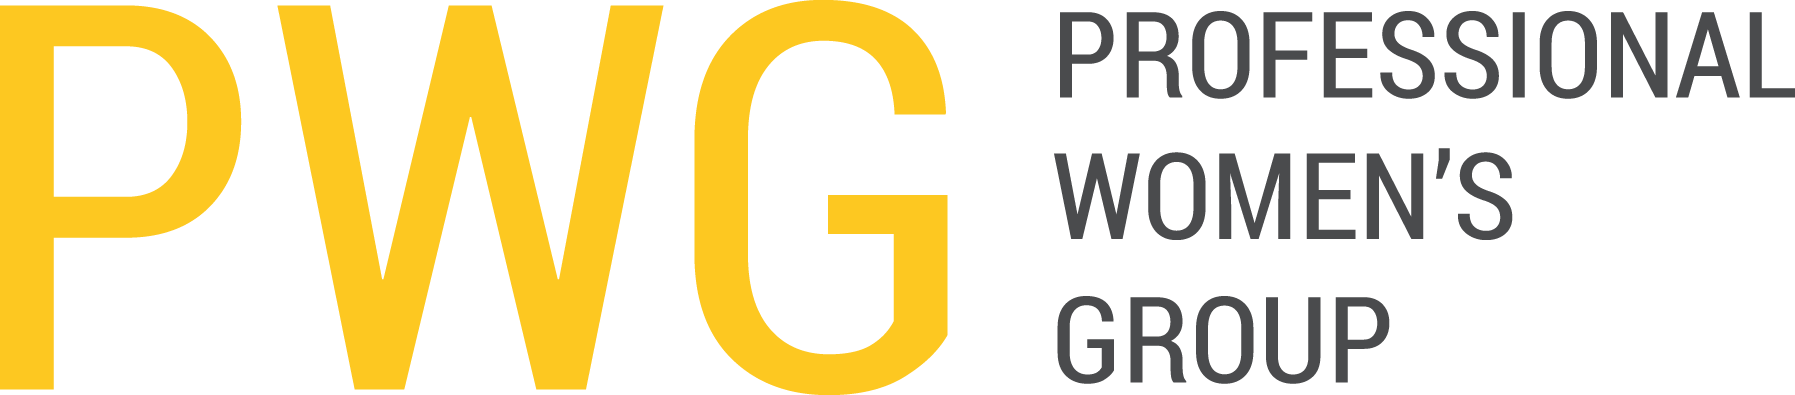 PWG-professional-women-group-zurich-business-cooperation.png